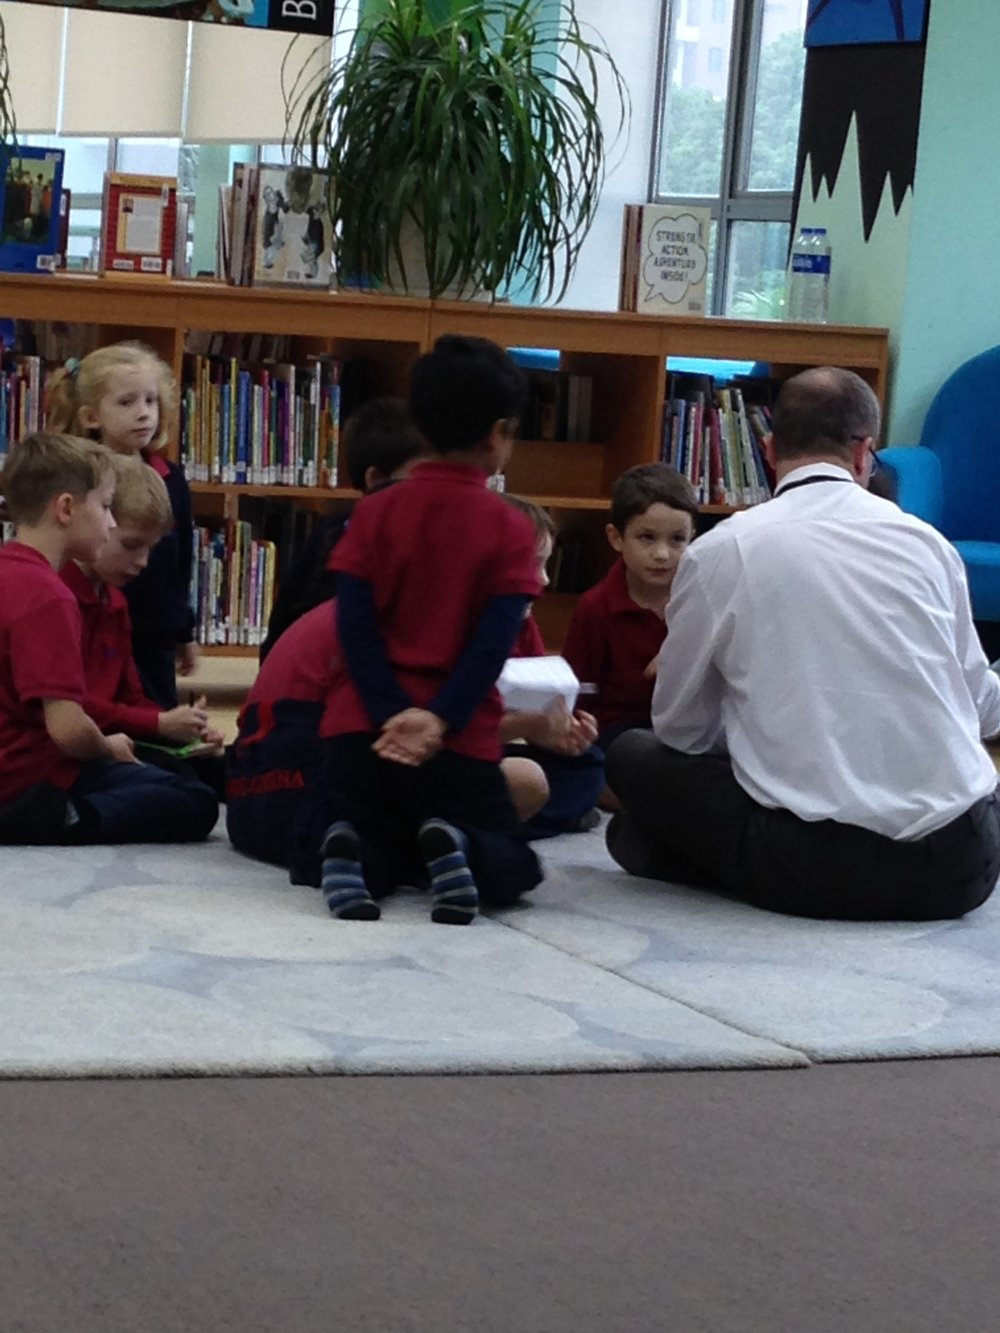 I wasn't the only one sharing stories. At lunchtime, the Head of School at Suzhou Singapore International School and other dignitaries read to the kids in the library.